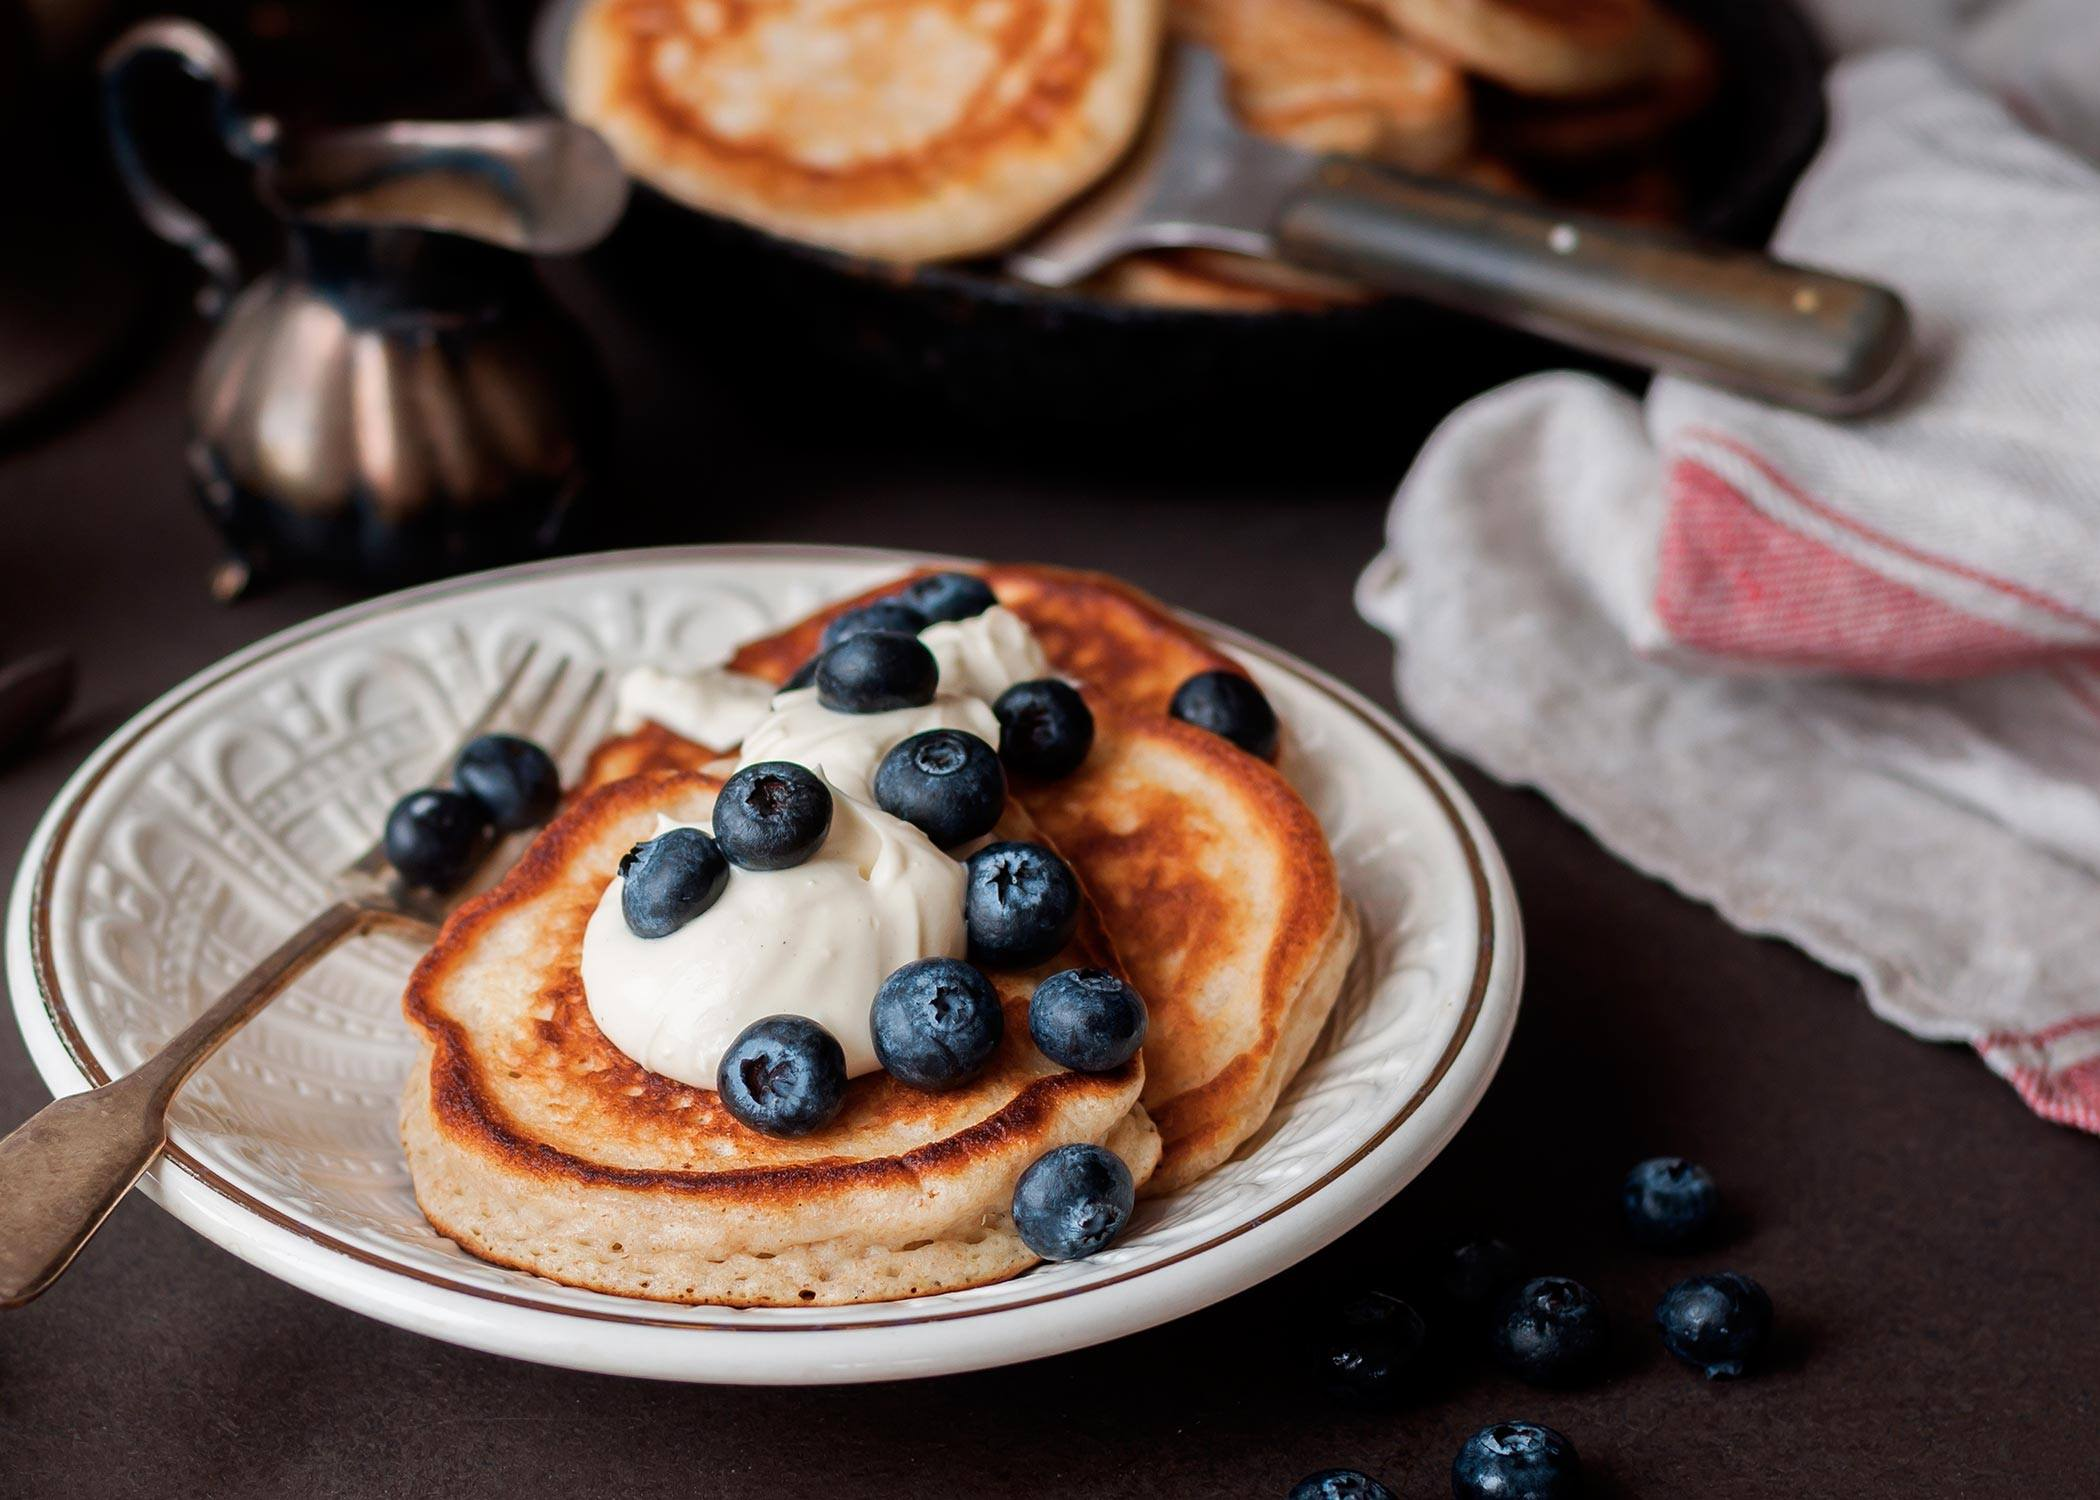 pancakes with blueberries and whipped cream